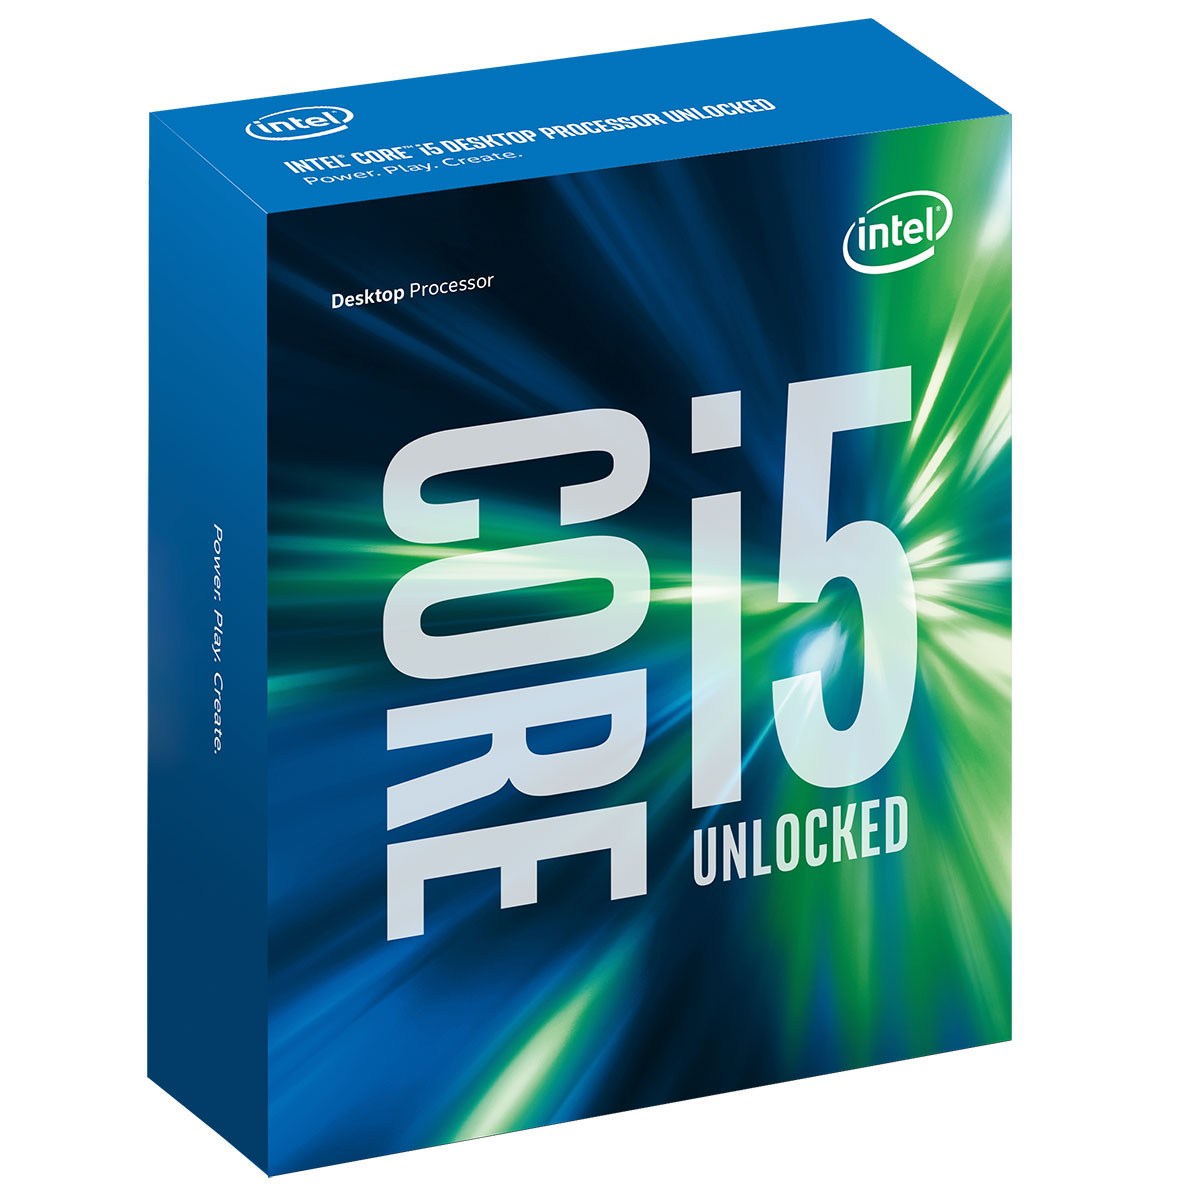 Processeur Intel Core i5-6600K (3.5 GHz) Processeur Quad Core Socket 1151 Cache L3 6 Mo Intel HD Graphics 530 0.014 micron (version boîte sans ventilateur - garantie Intel 3 ans)